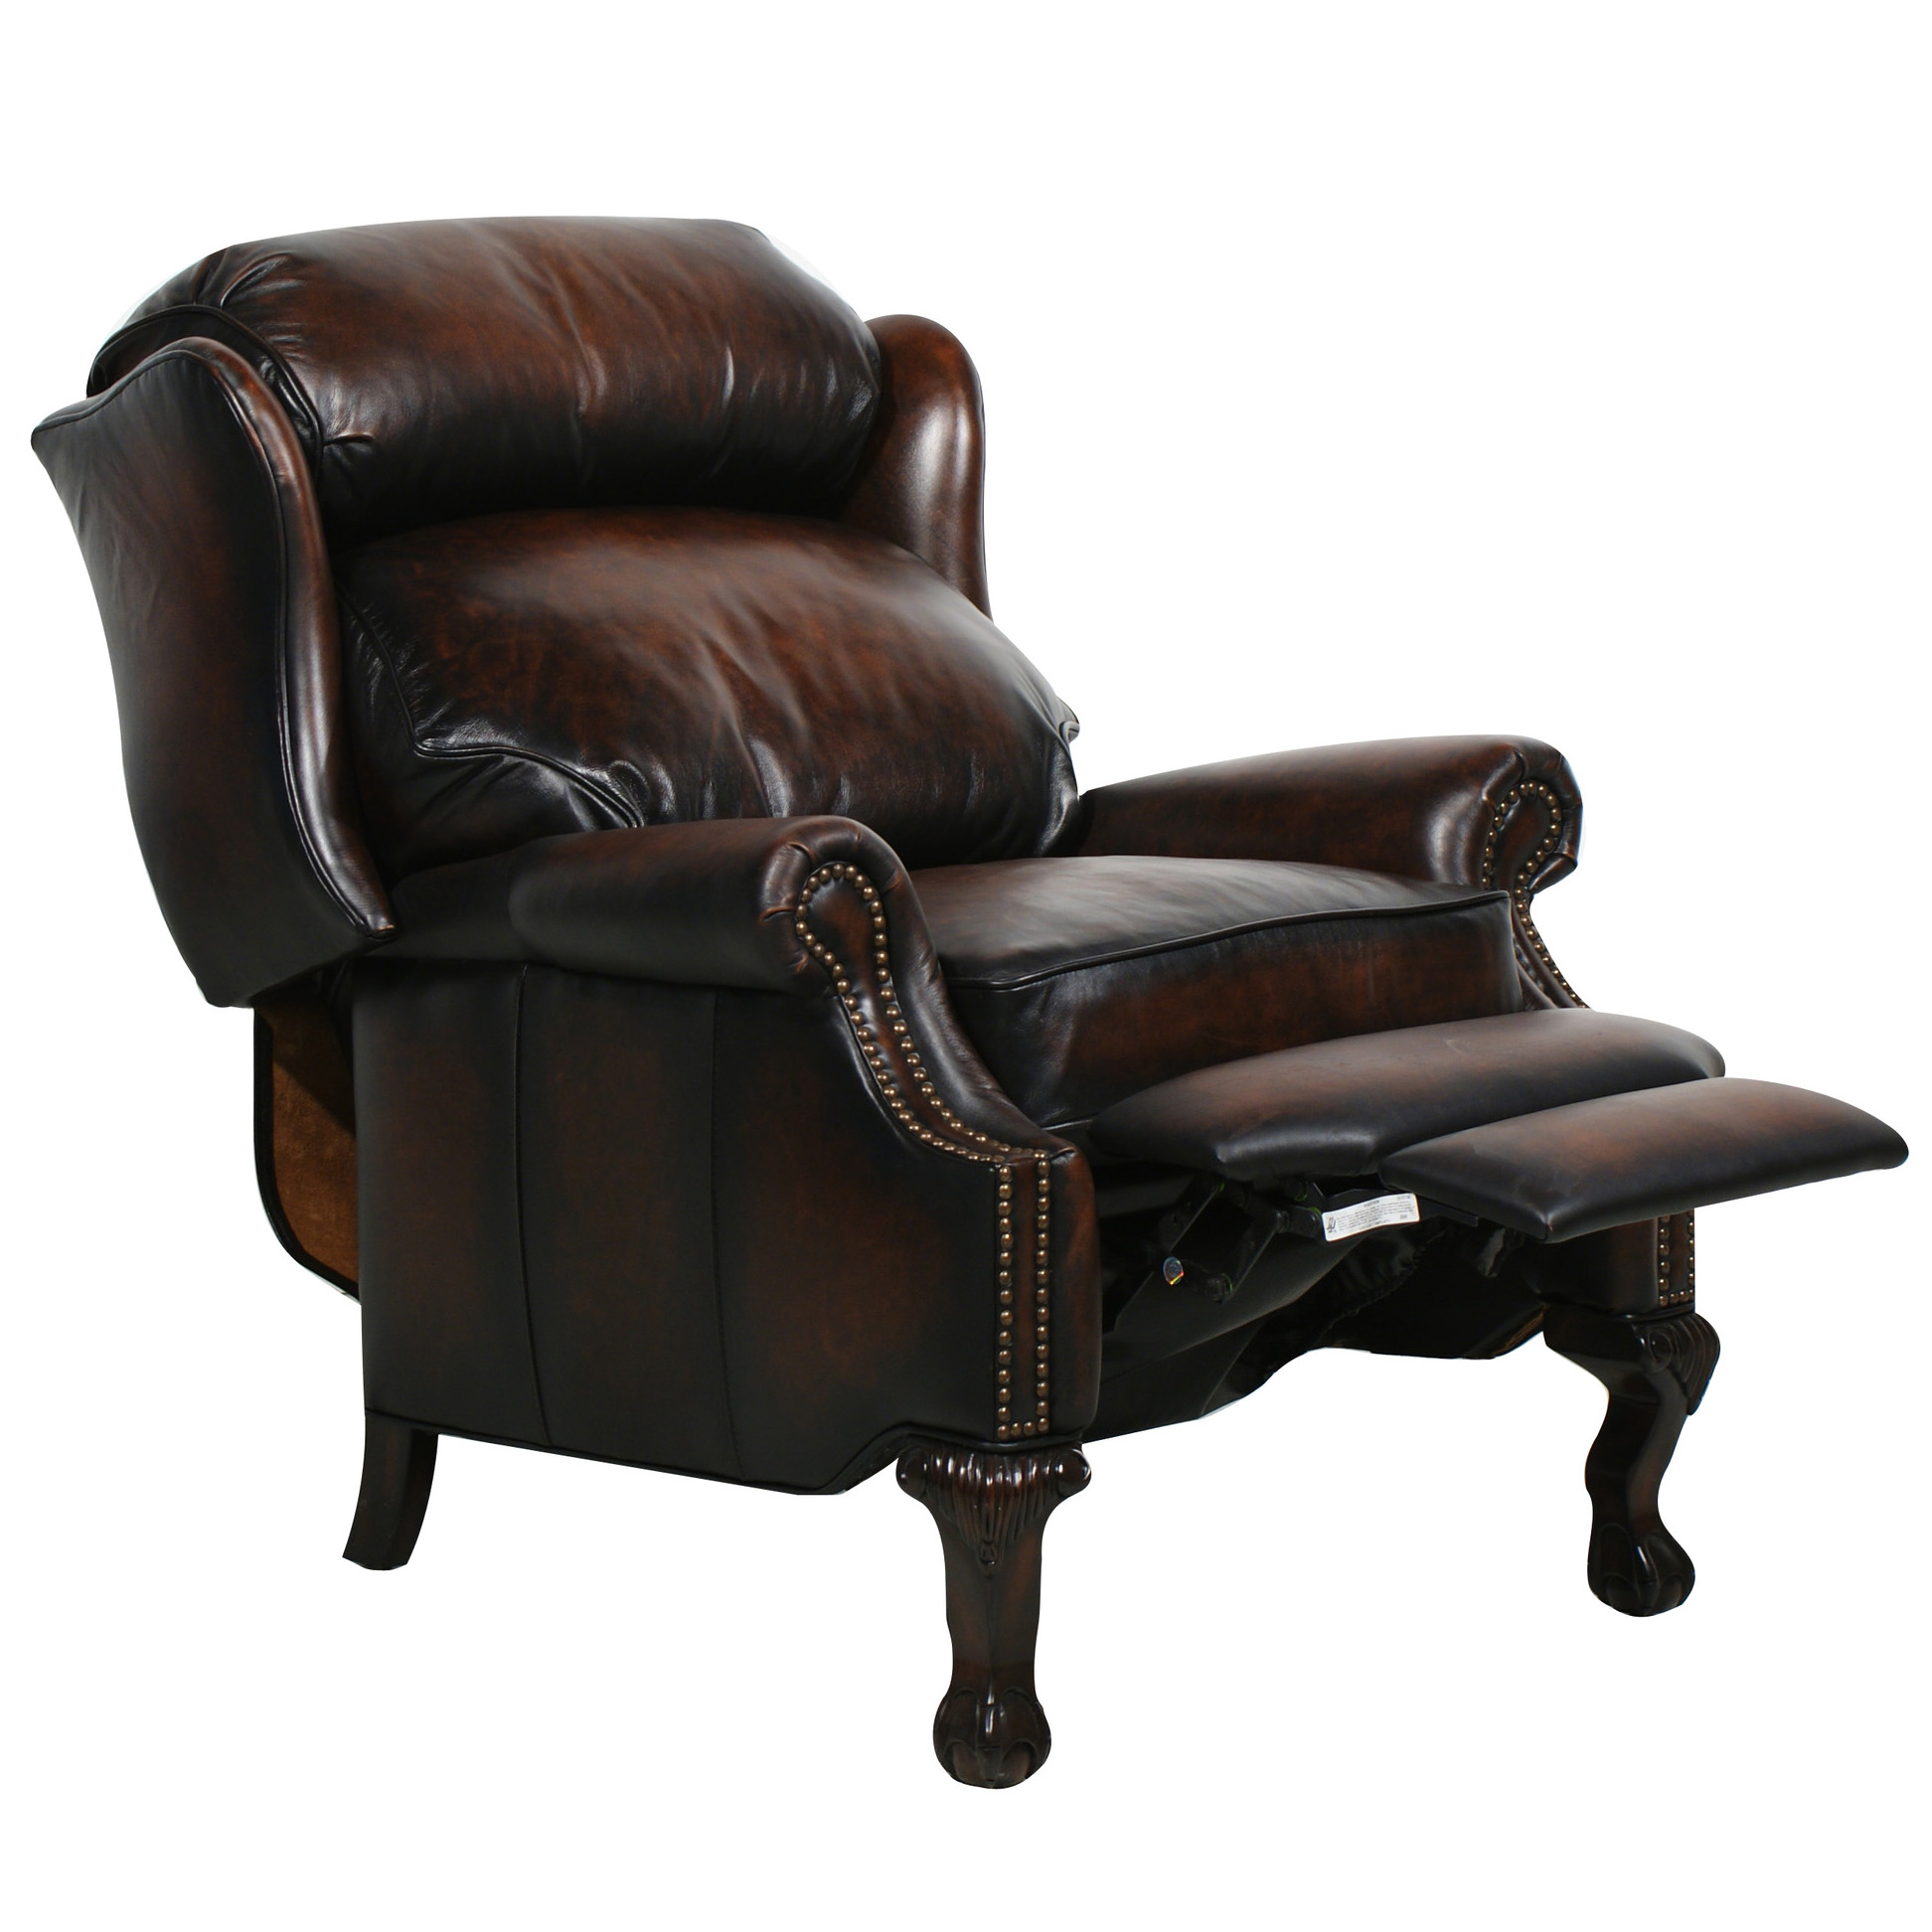 Reclining Chairs Barcalounger Danbury Ii Recliner Chair Leather Recliner